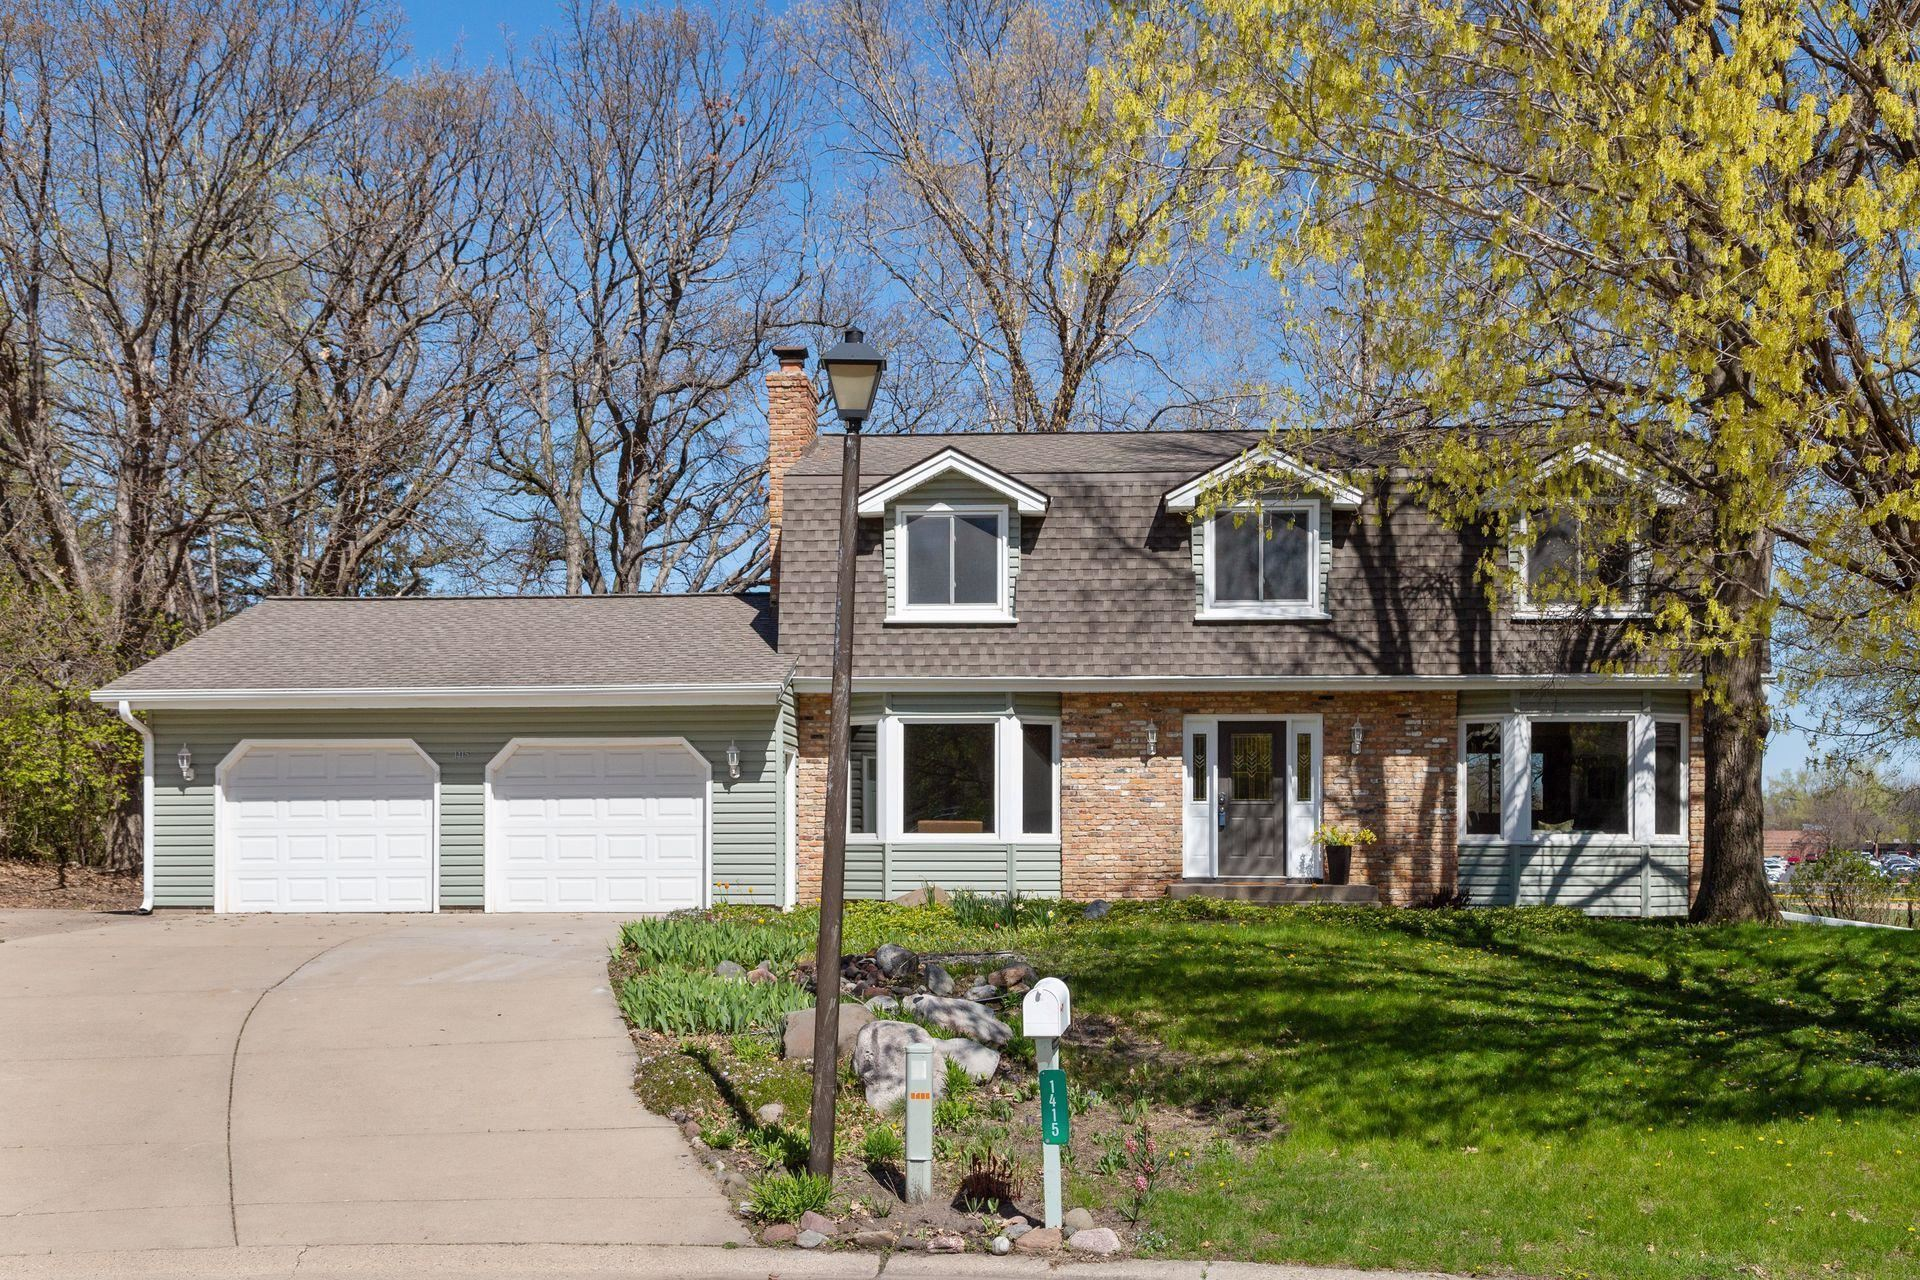 1415 N Danube Road, Fridley, MN 55432 - MLS#: 5747229